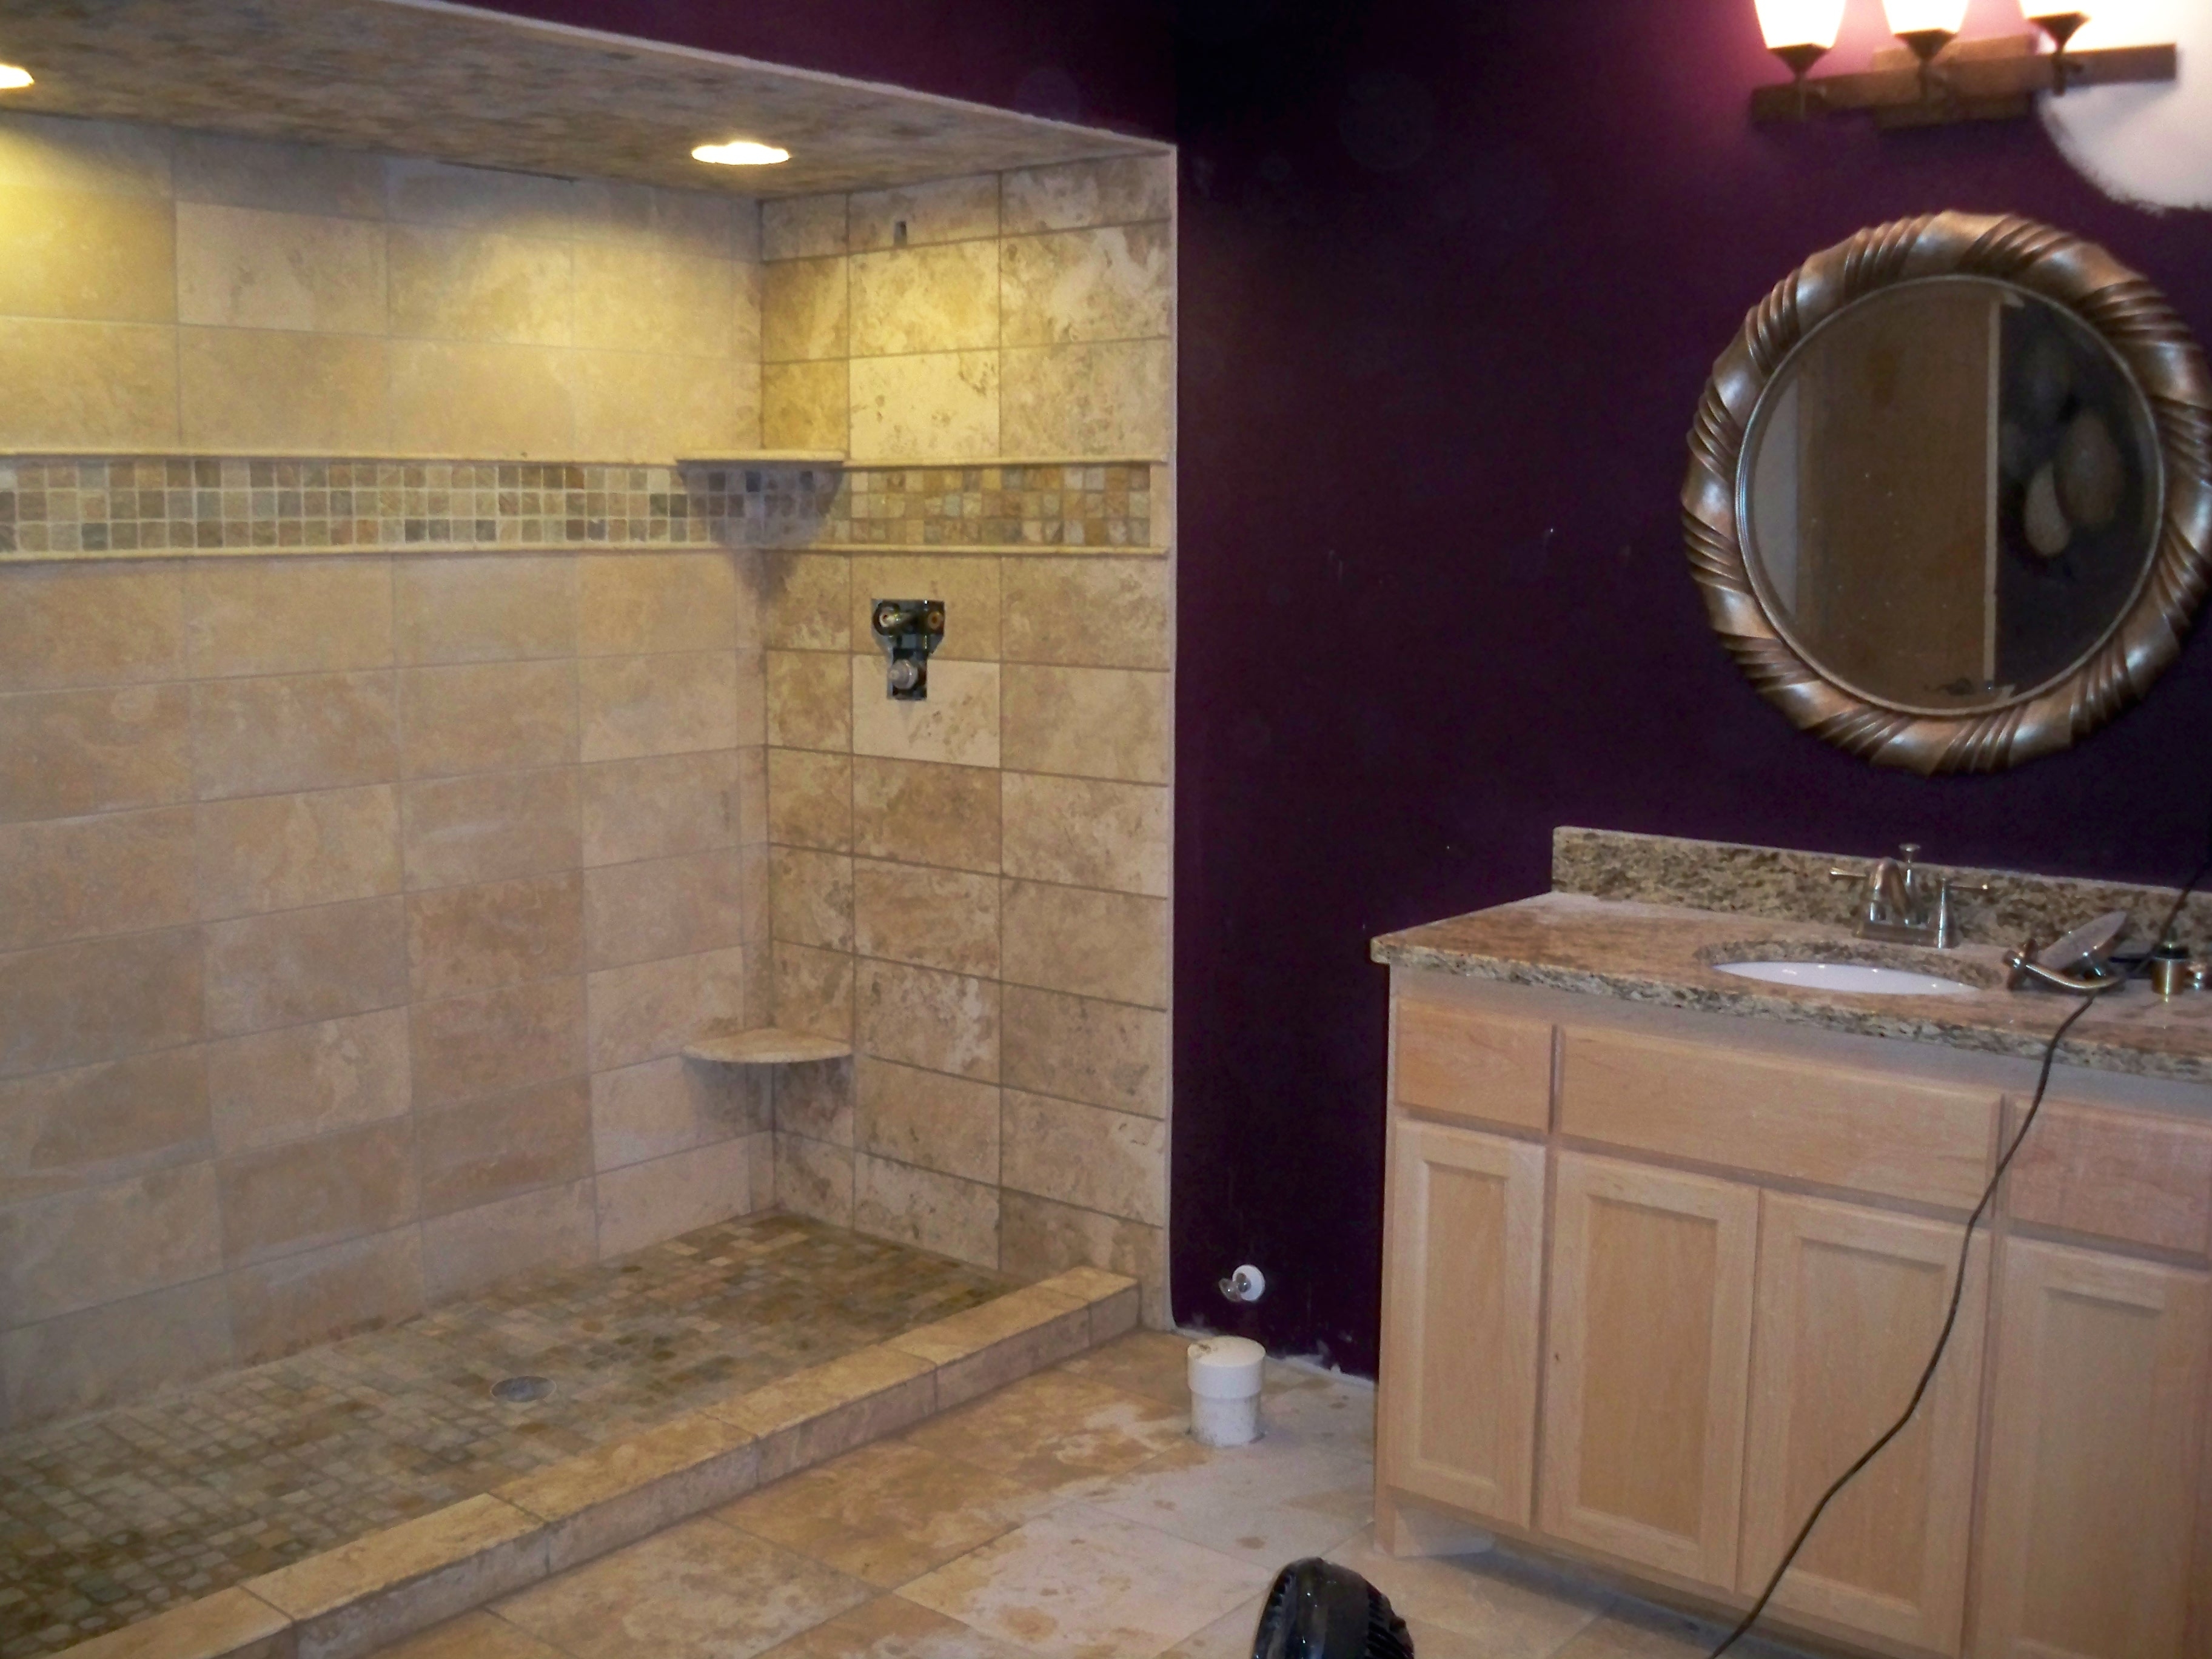 Discover what you can do with a bathroom remodel